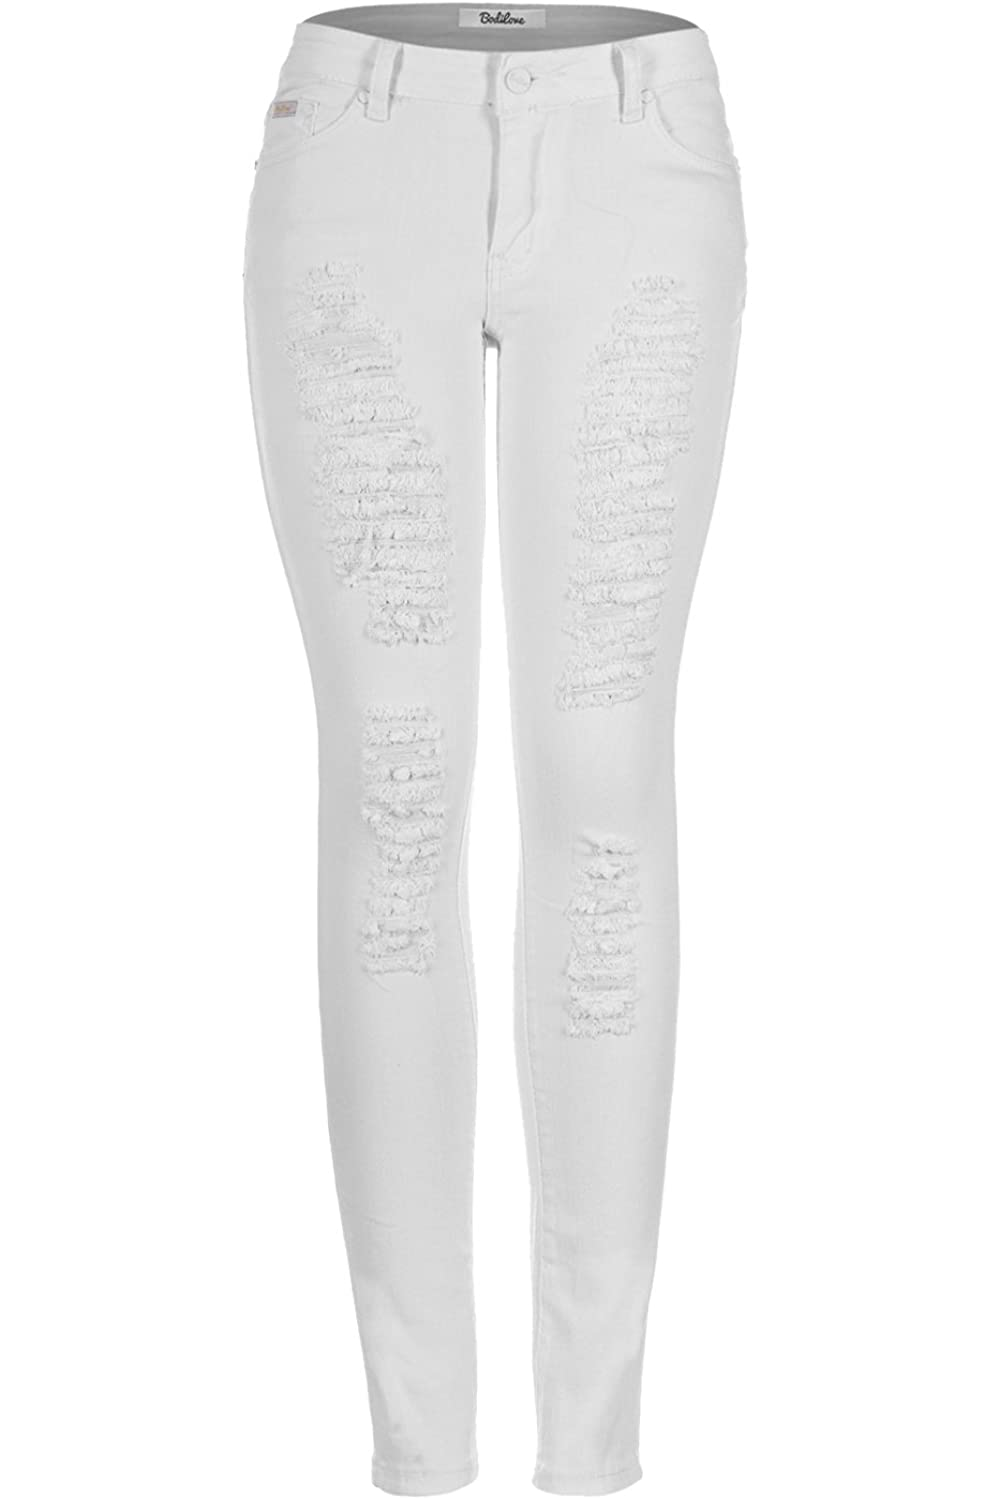 c38a3a2d2bf9 These Unique And Trendy Skinny Jeans Feature A Slim Stretch Fit